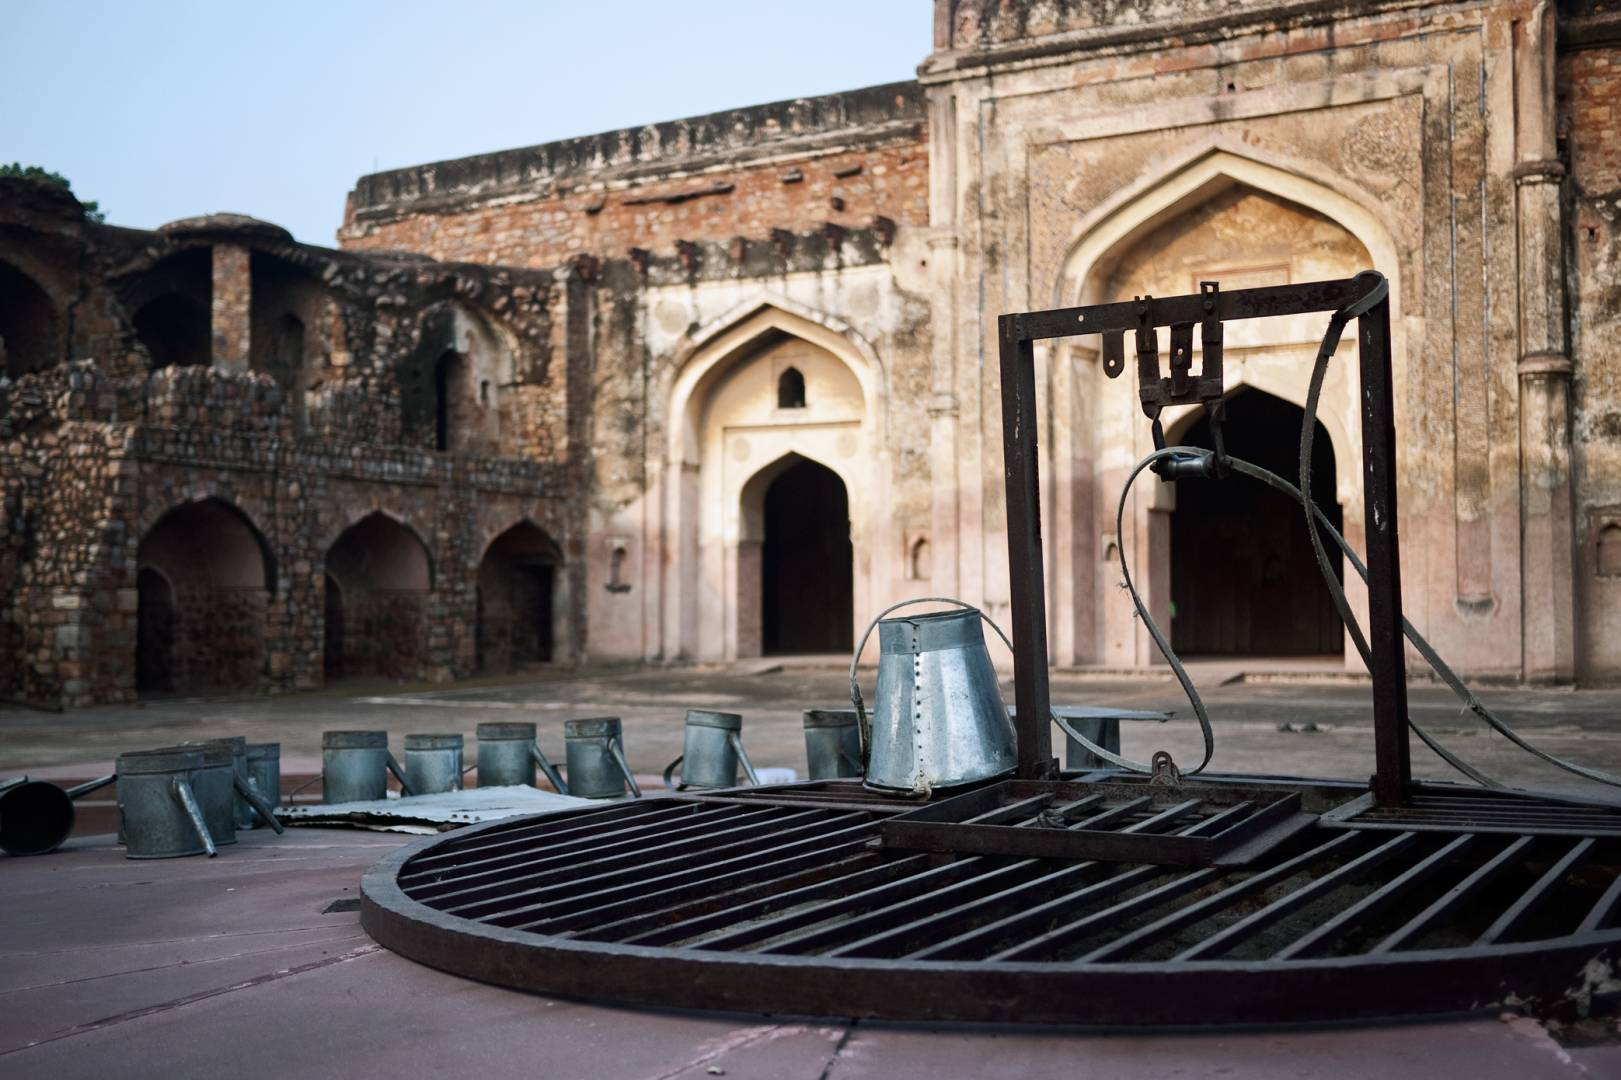 Khair-ul-Manazil, Mathura Road. The water well is an important feature of every mosque as worshippers must perform ablution before prayers.